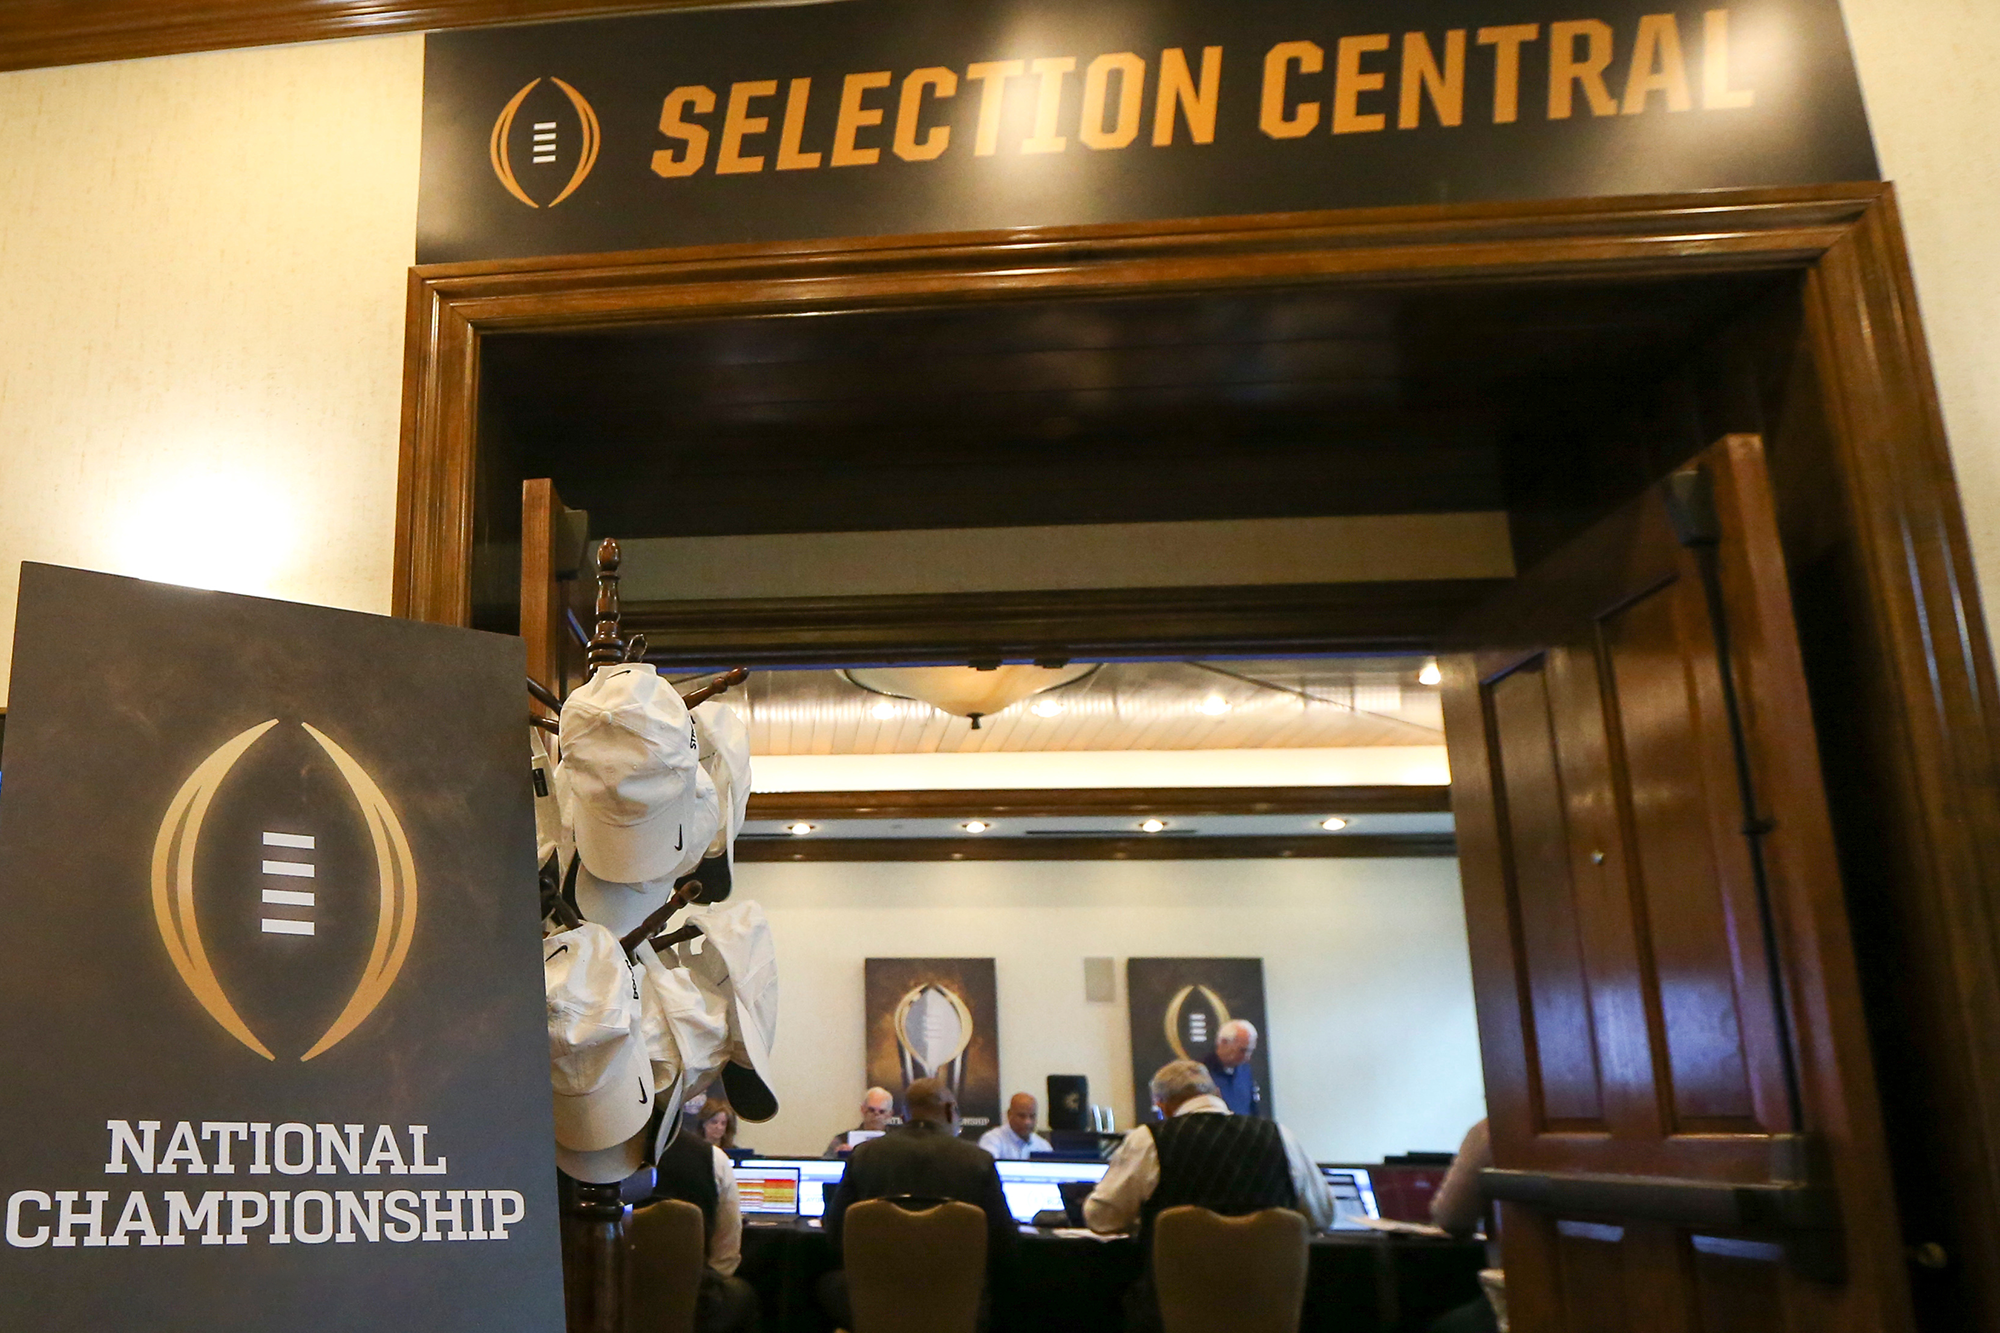 About the CFP Selection Committee Rankings - College Football Playoff